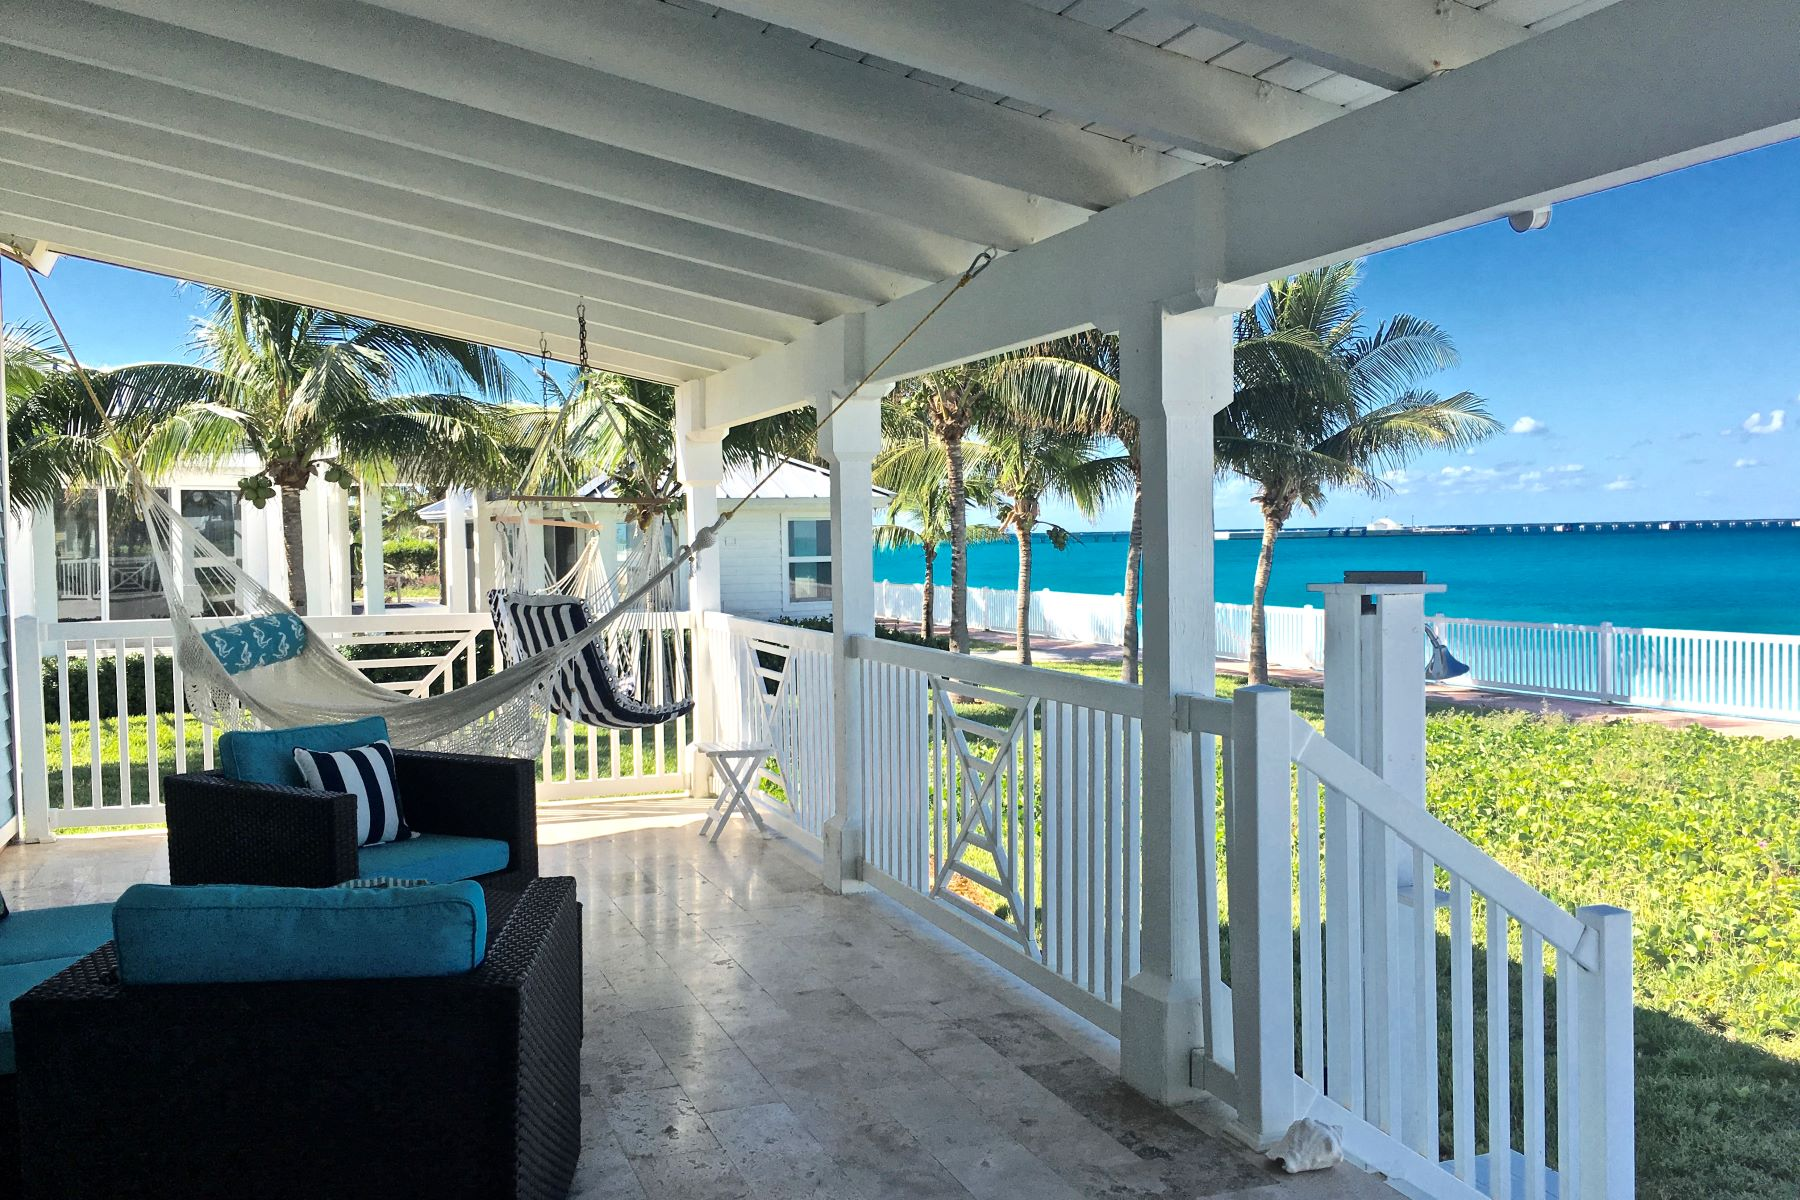 Single Family Home for Sale at Bimini Bay Resort Bimini, Bimini Bahamas